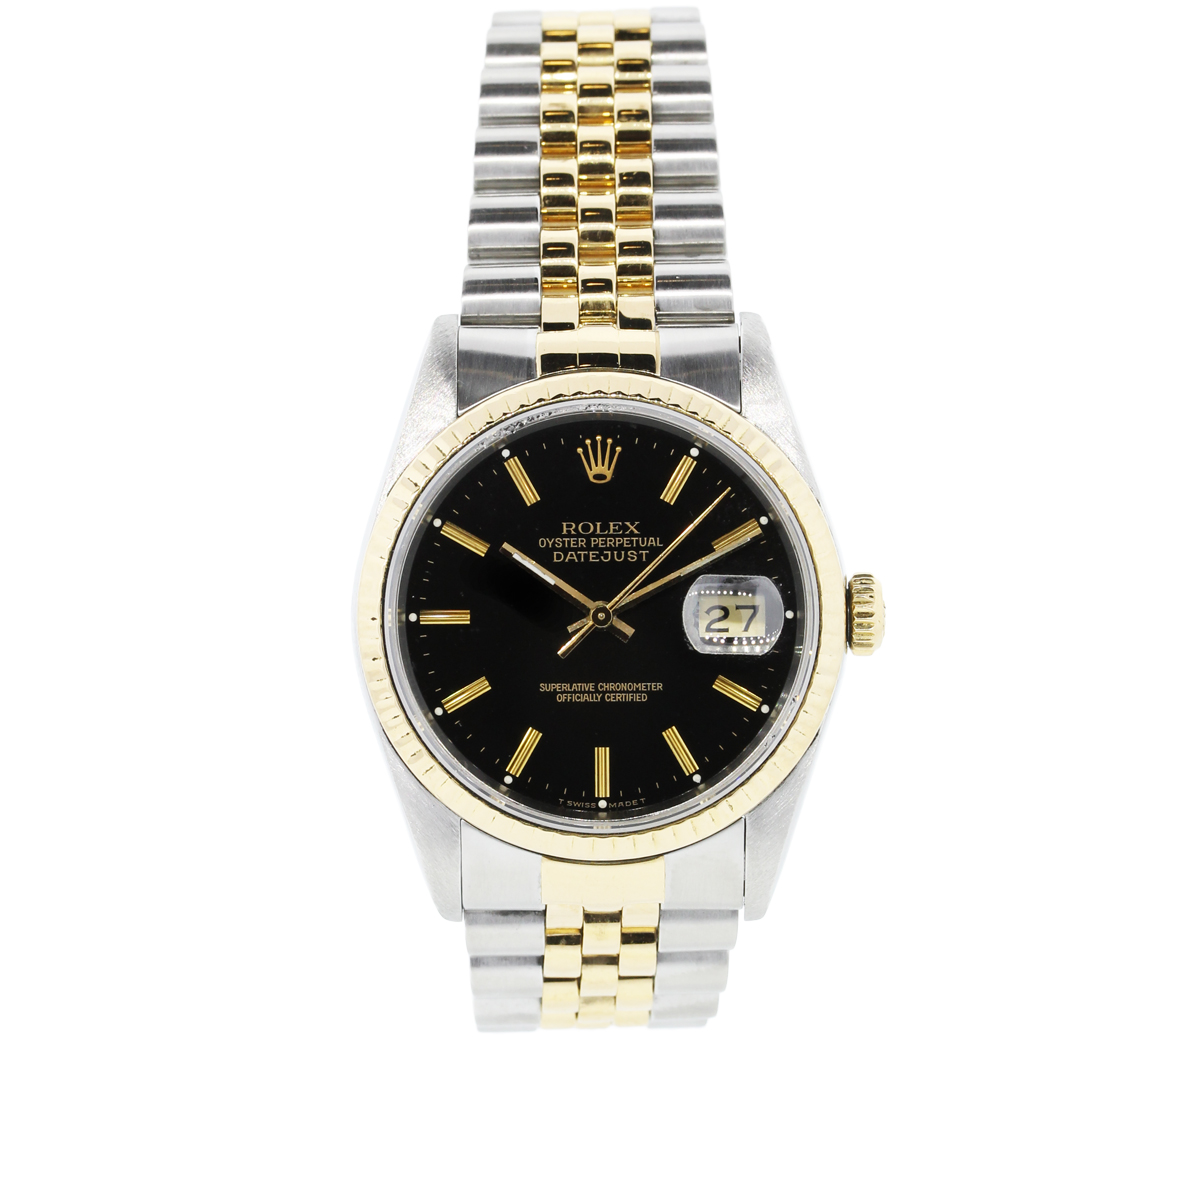 Rolex datejust 16233 two tone 18k stainless steel jubilee watch for Jubilee watch